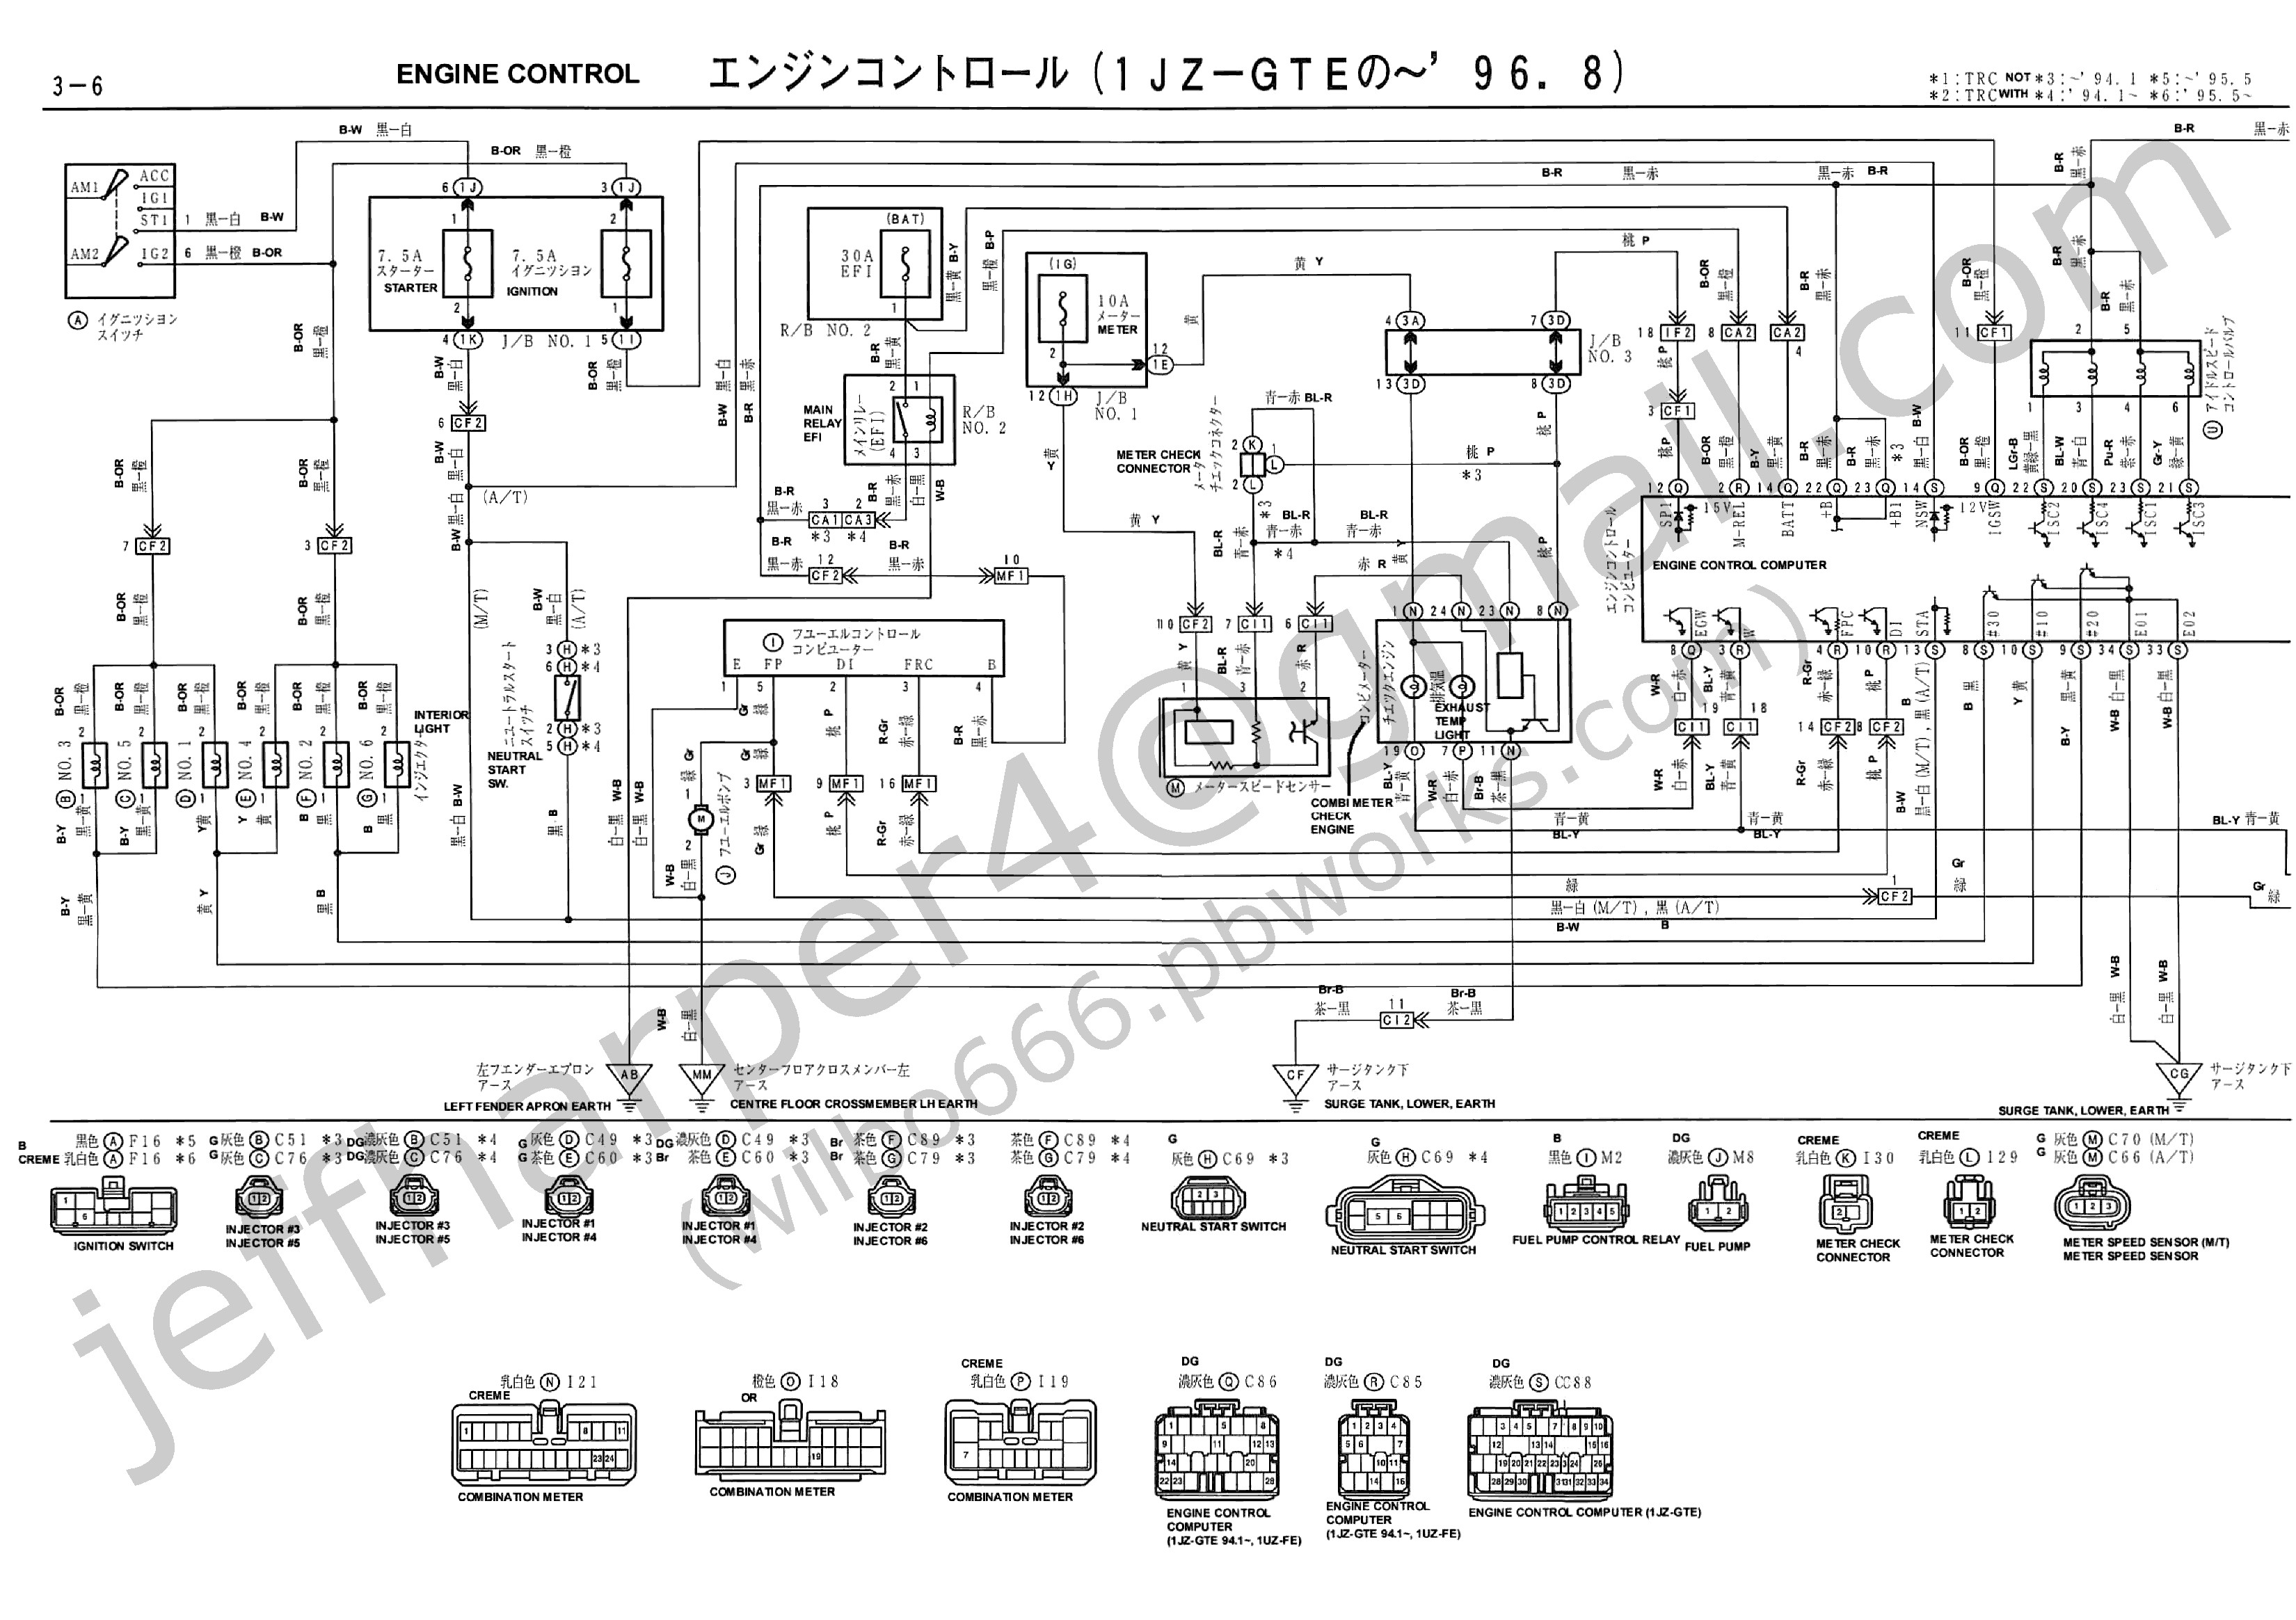 wiring diagram de toyota probox gratis